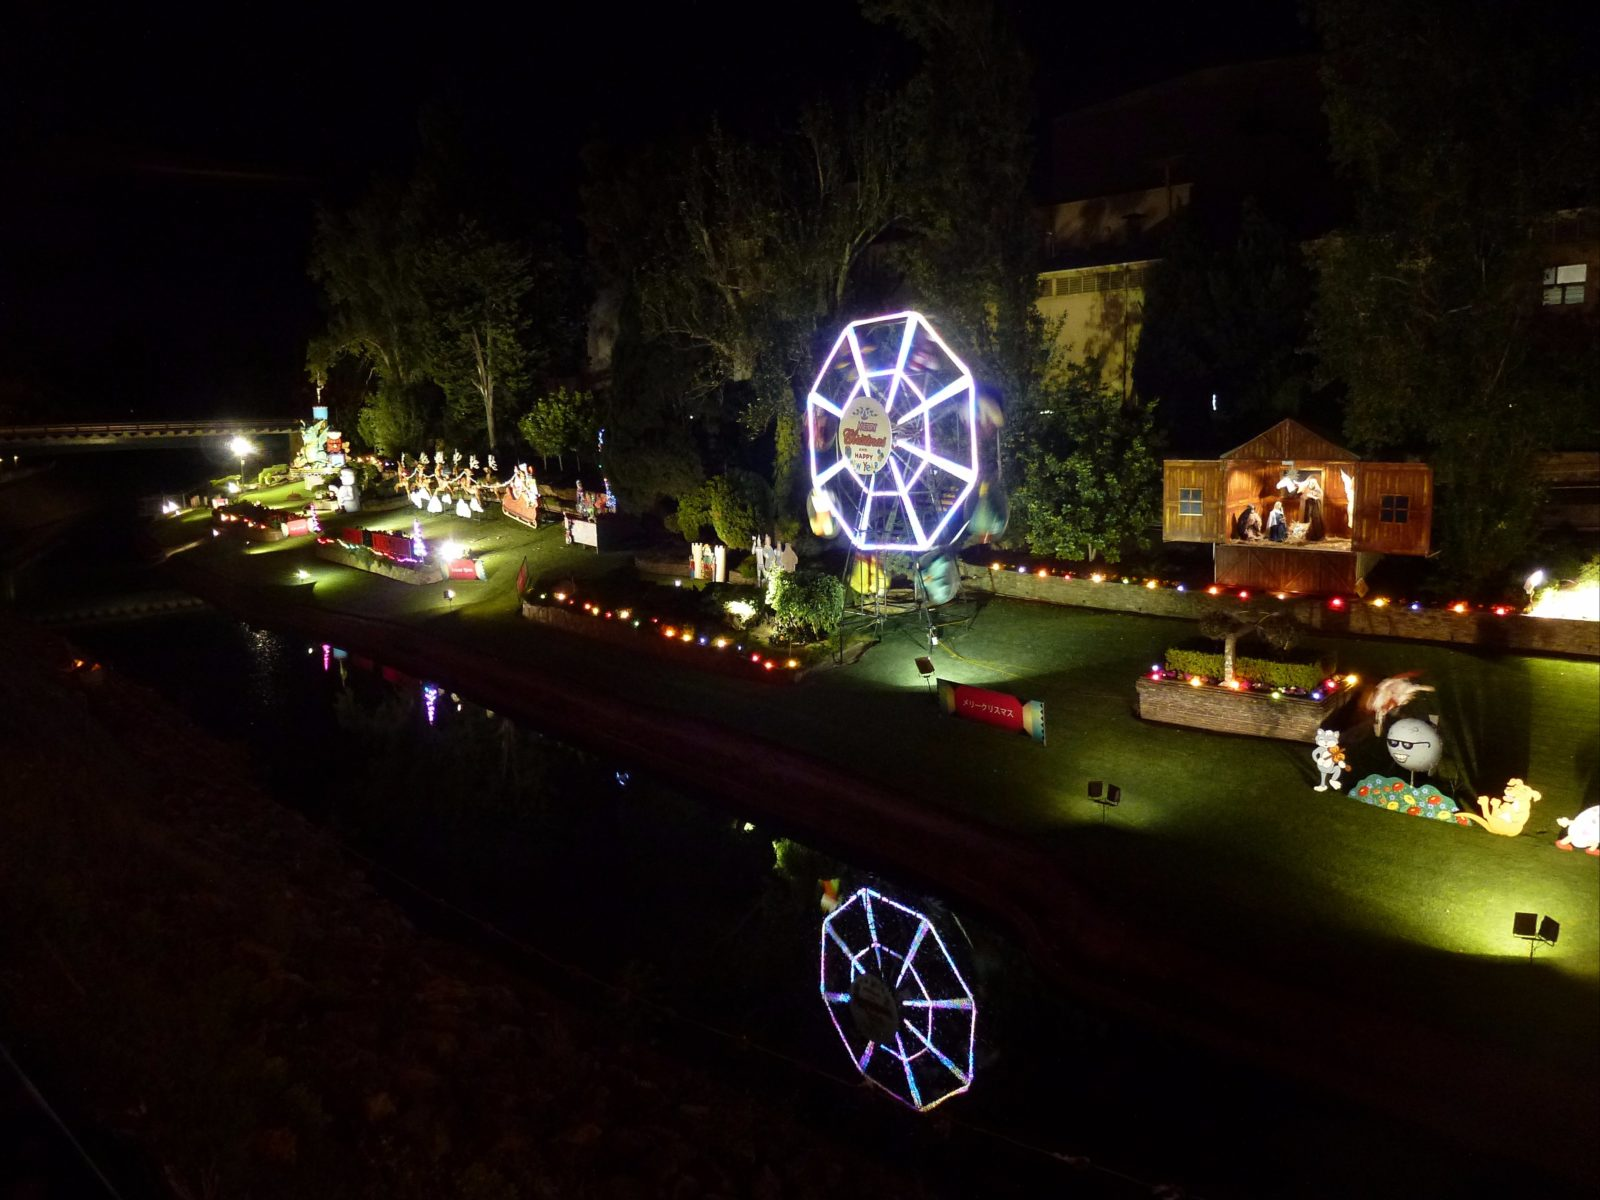 The Christmas Riverbank Display